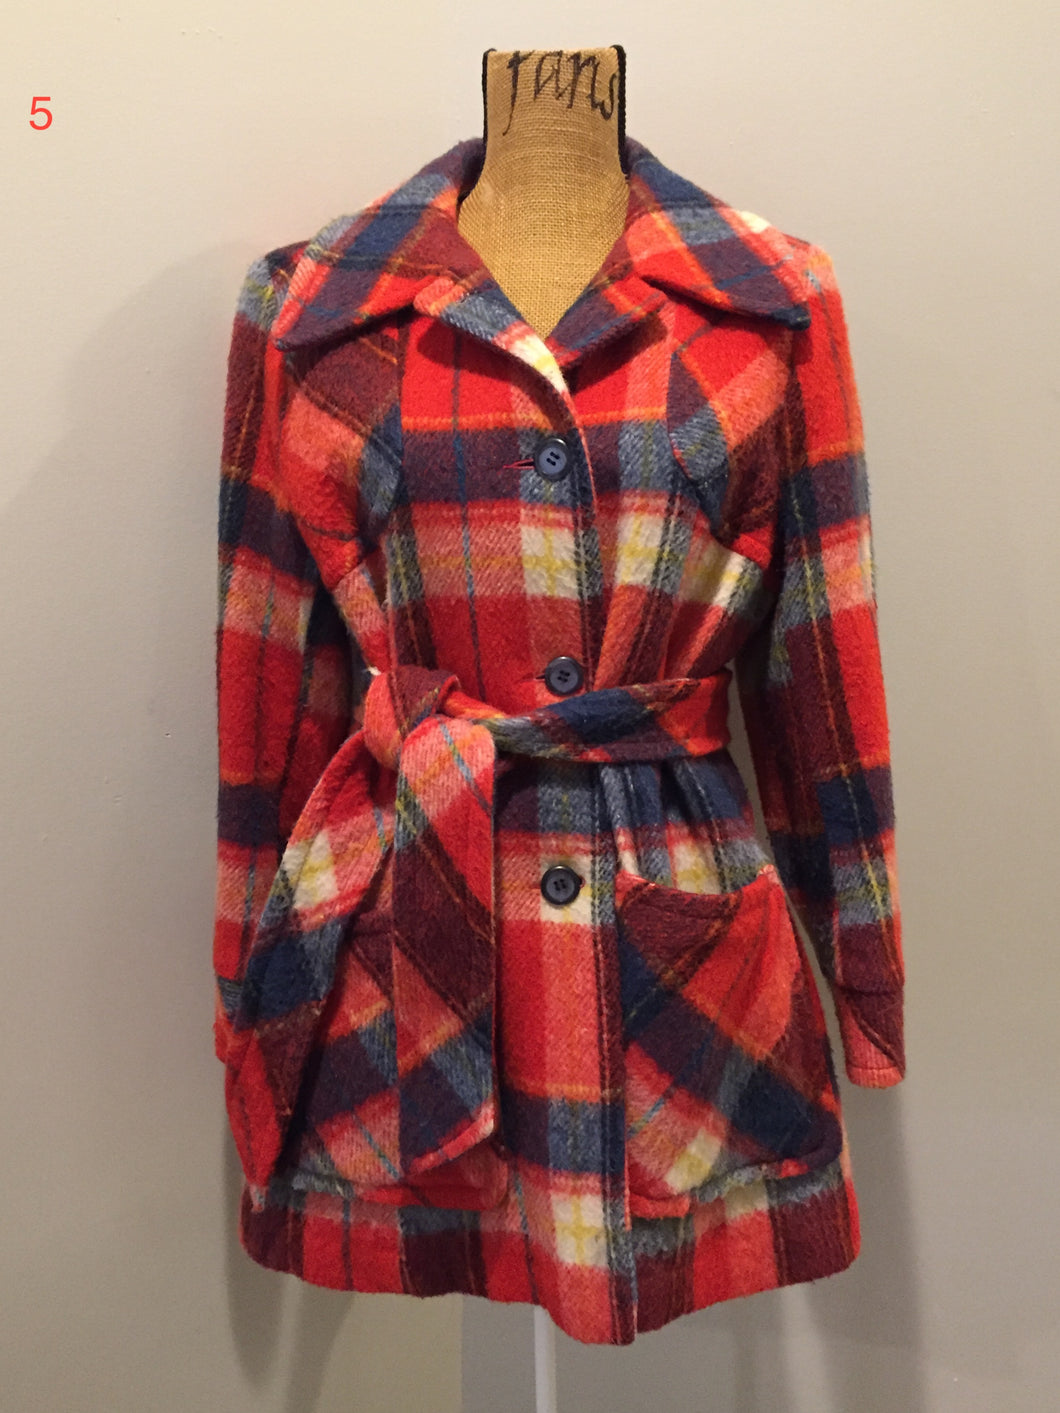 Croydon orange, yellow, blue and white plaid coat with button closures, belt and patch pockets. Size 14, fits small.